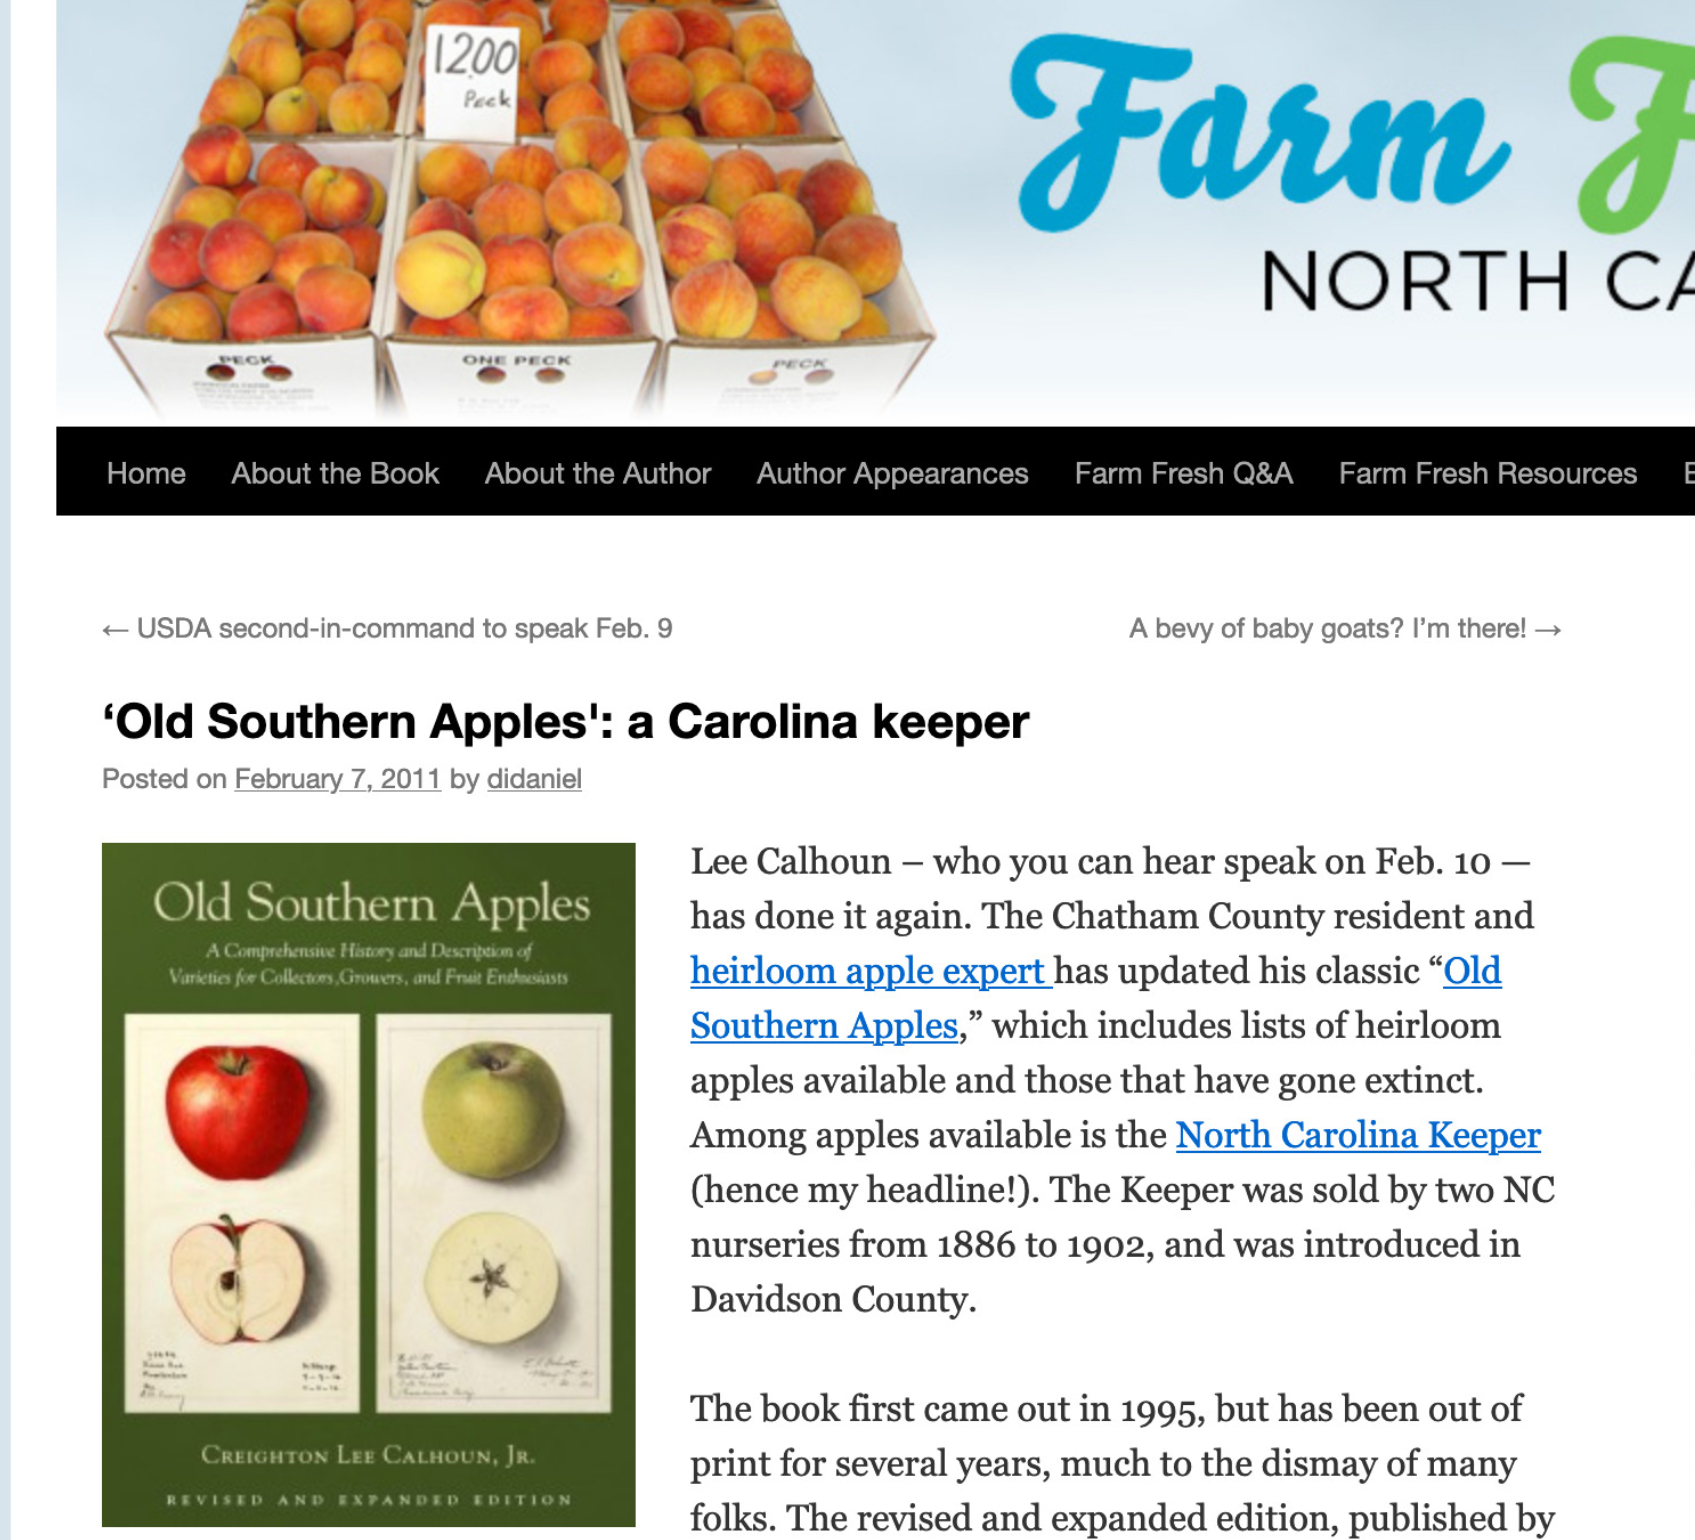 screen shot of the article on the Farm Fresh North Carolina webpage